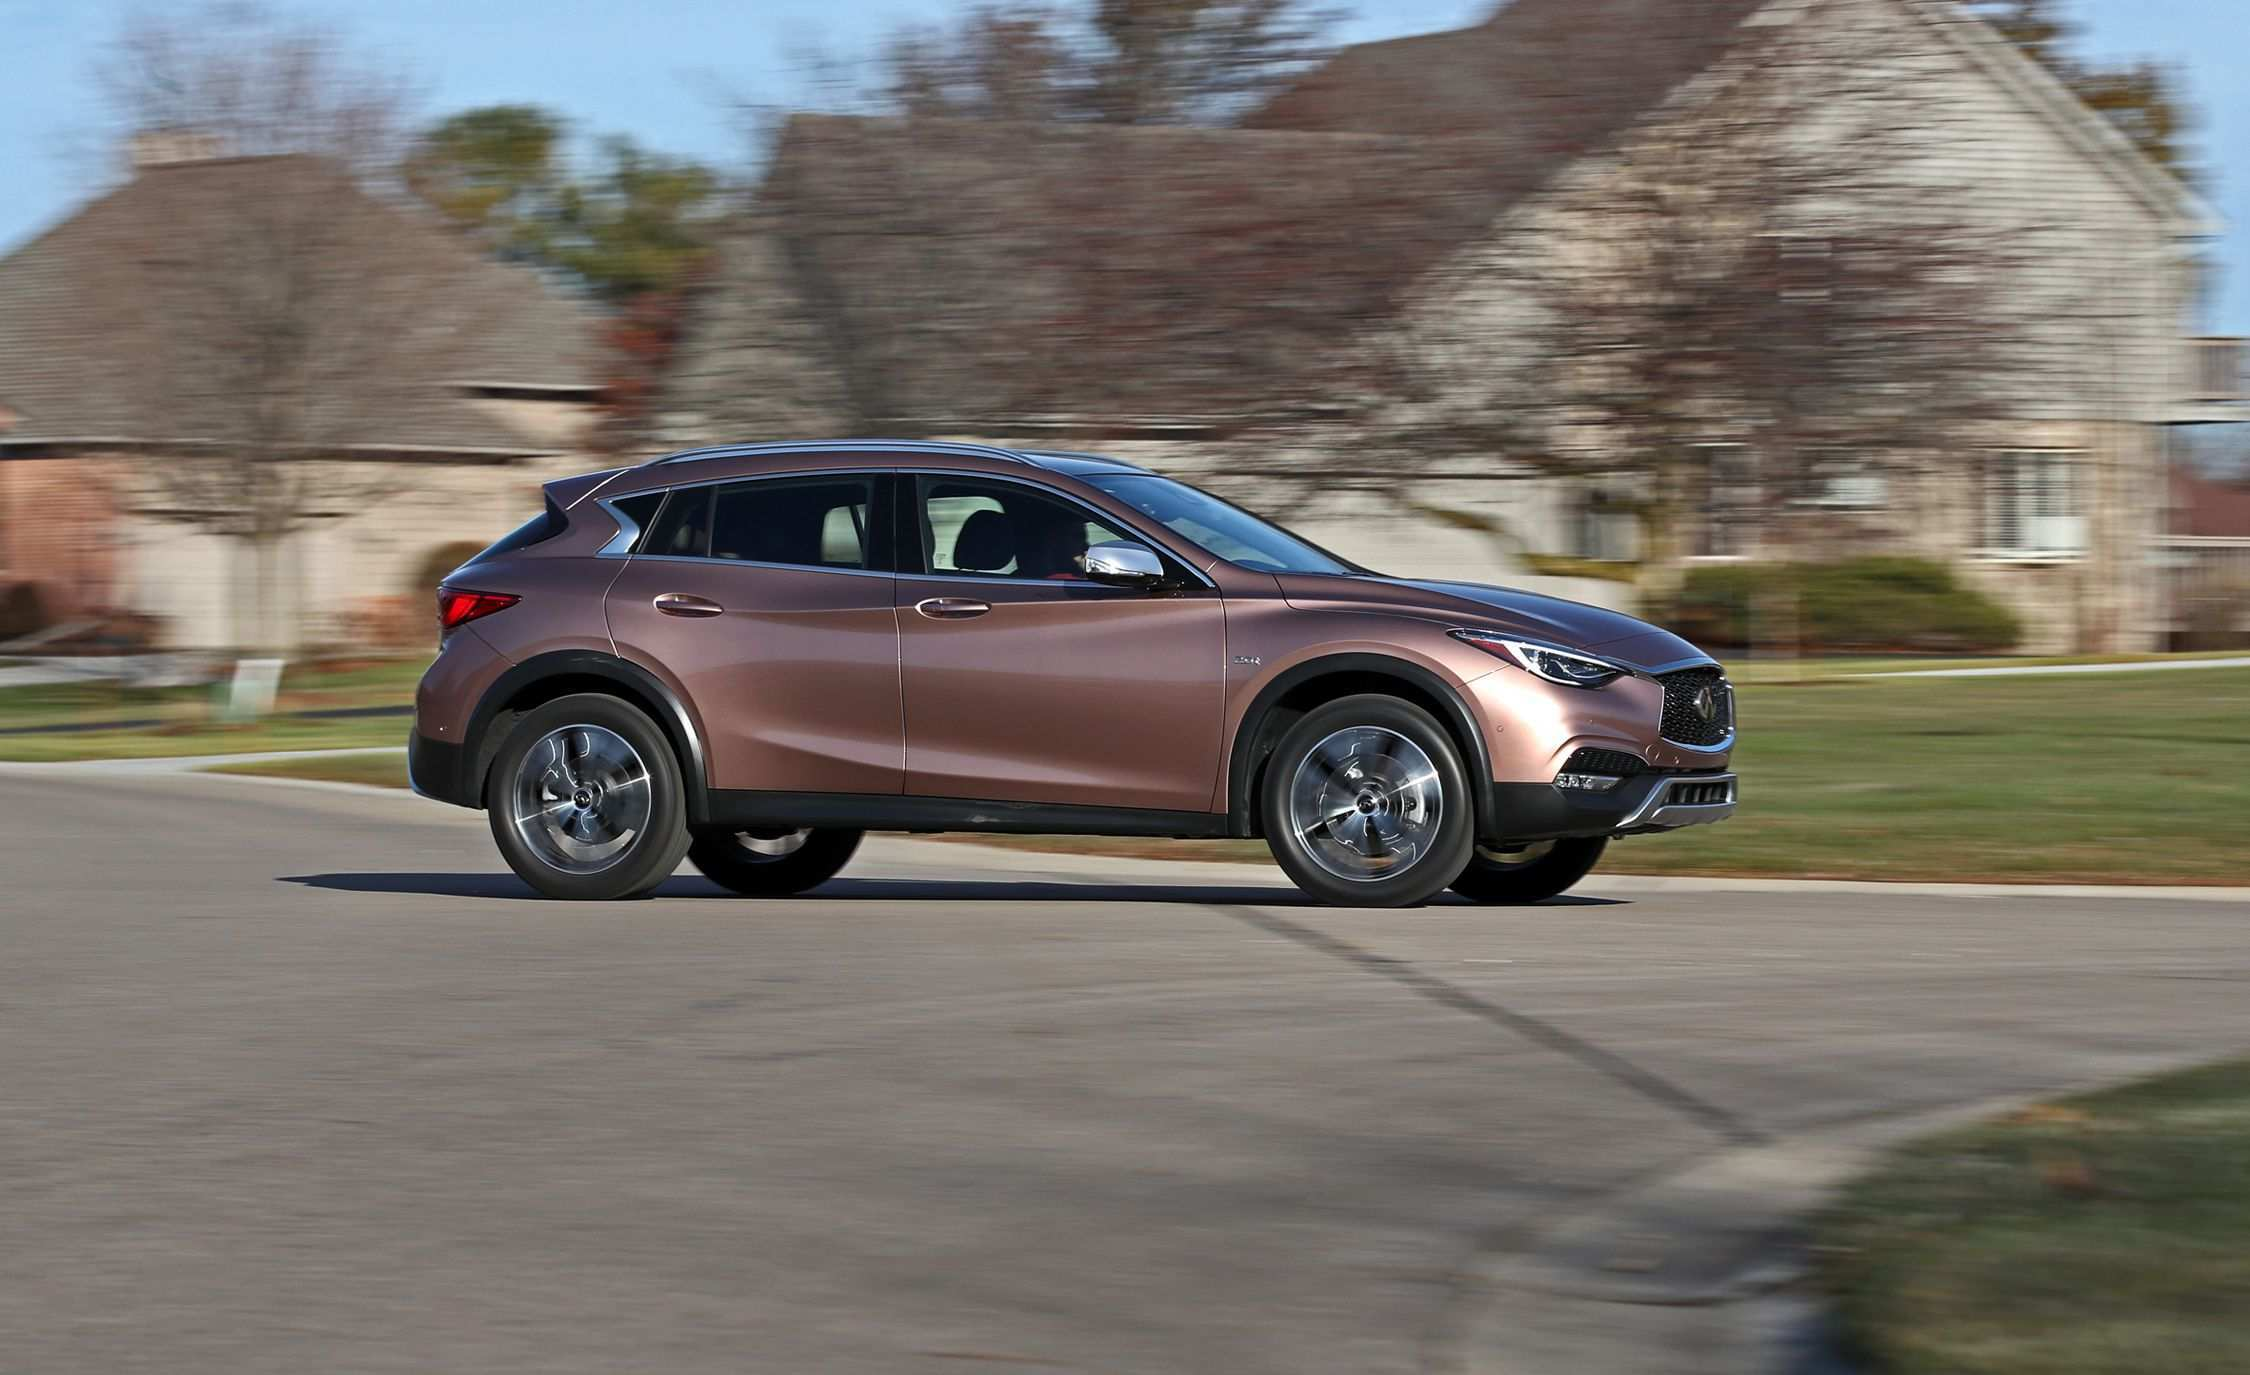 83 Great 2020 Infiniti Qx30 Dimensions Concept by 2020 Infiniti Qx30 Dimensions